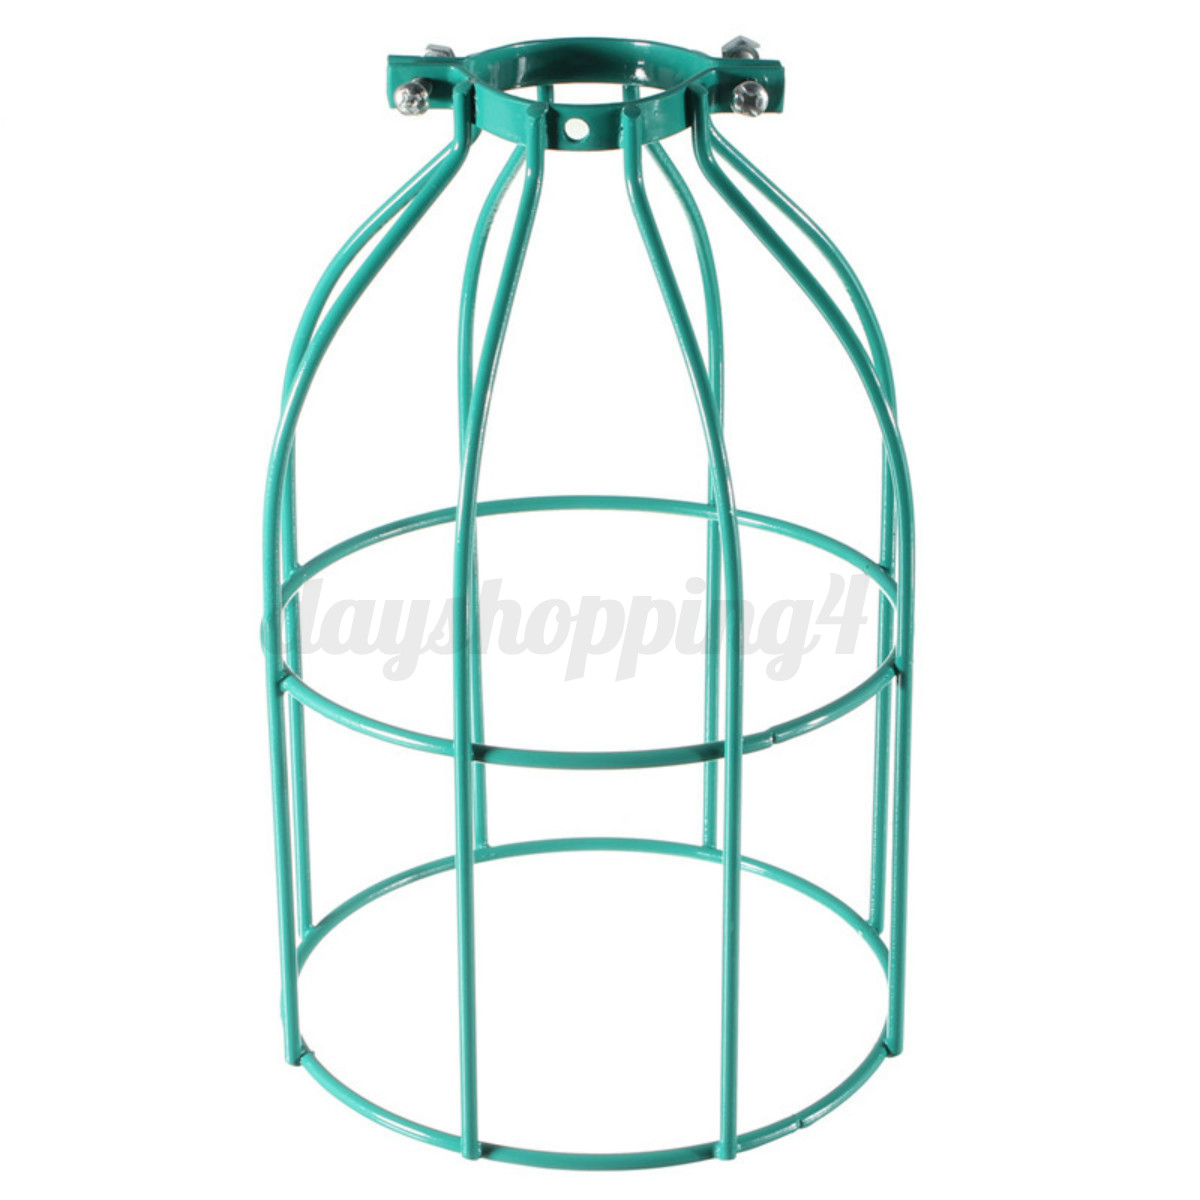 vintage industriel r tro m tal loft abat jour cage plafond ampoule lampe lustre ebay. Black Bedroom Furniture Sets. Home Design Ideas